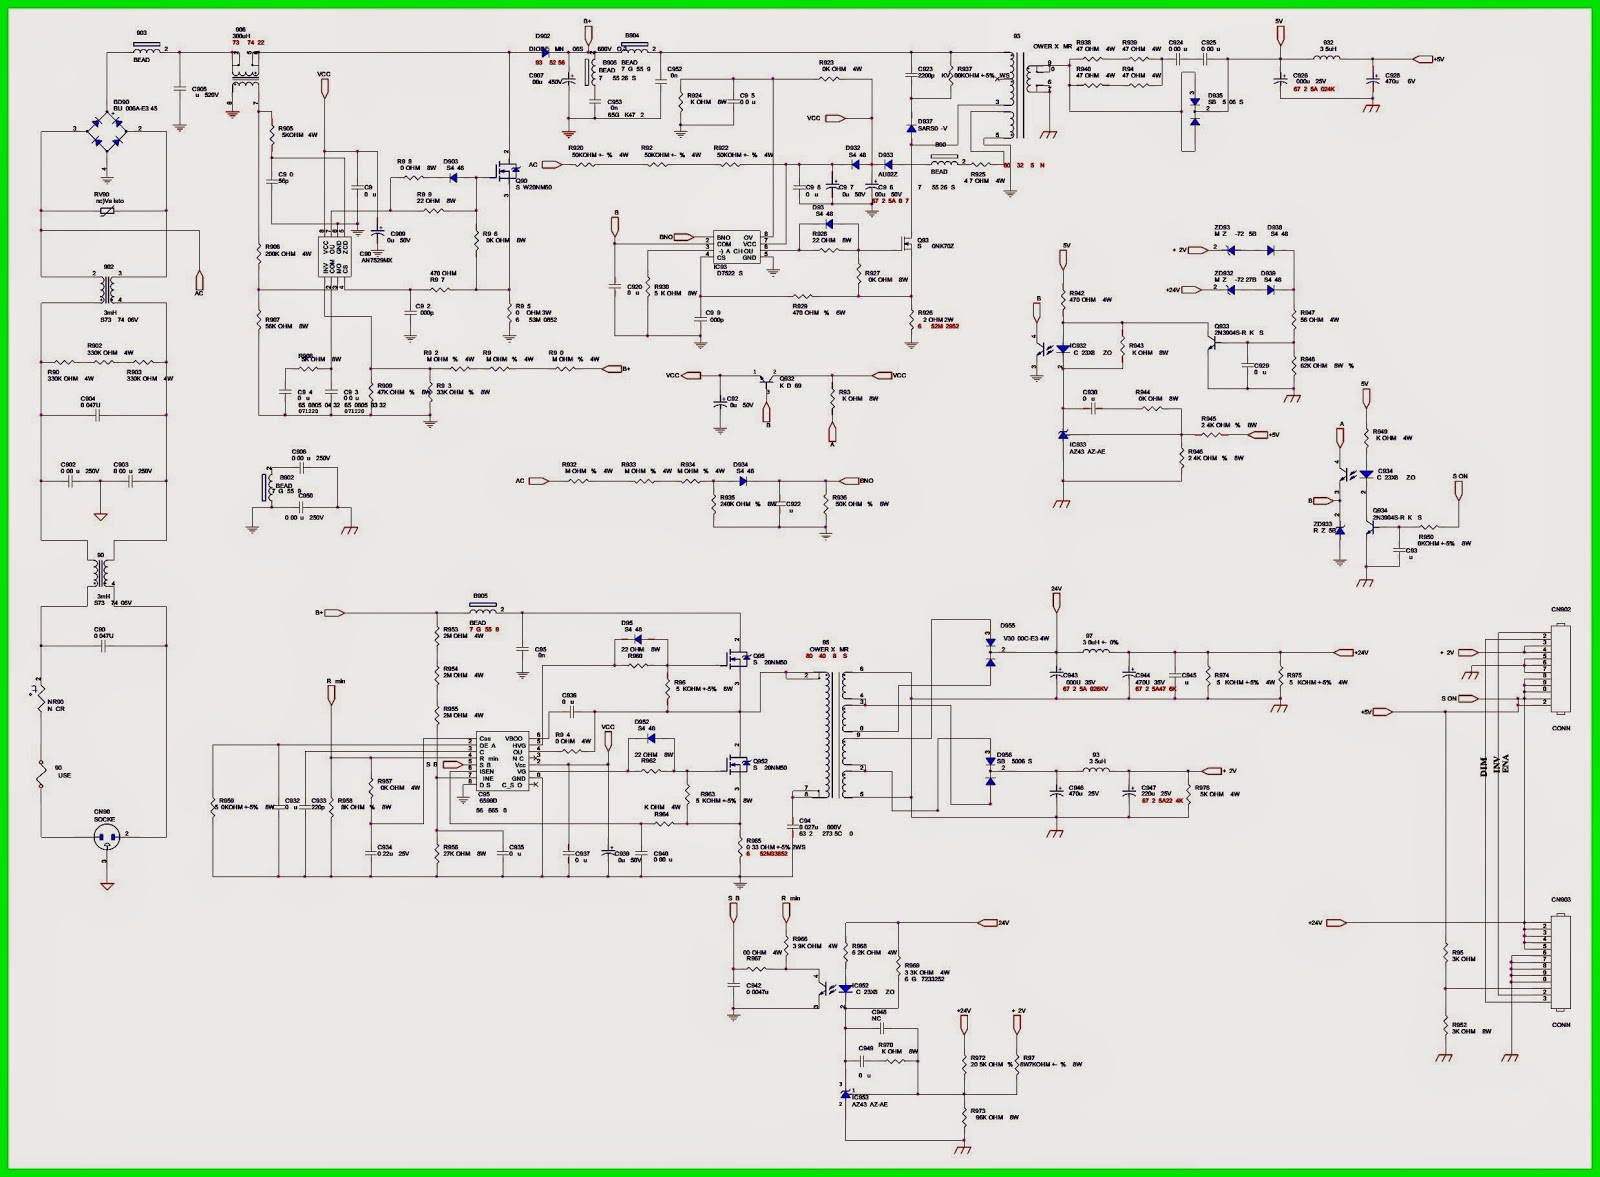 wiring diagram lg tv lg repair diagram wiring diagram